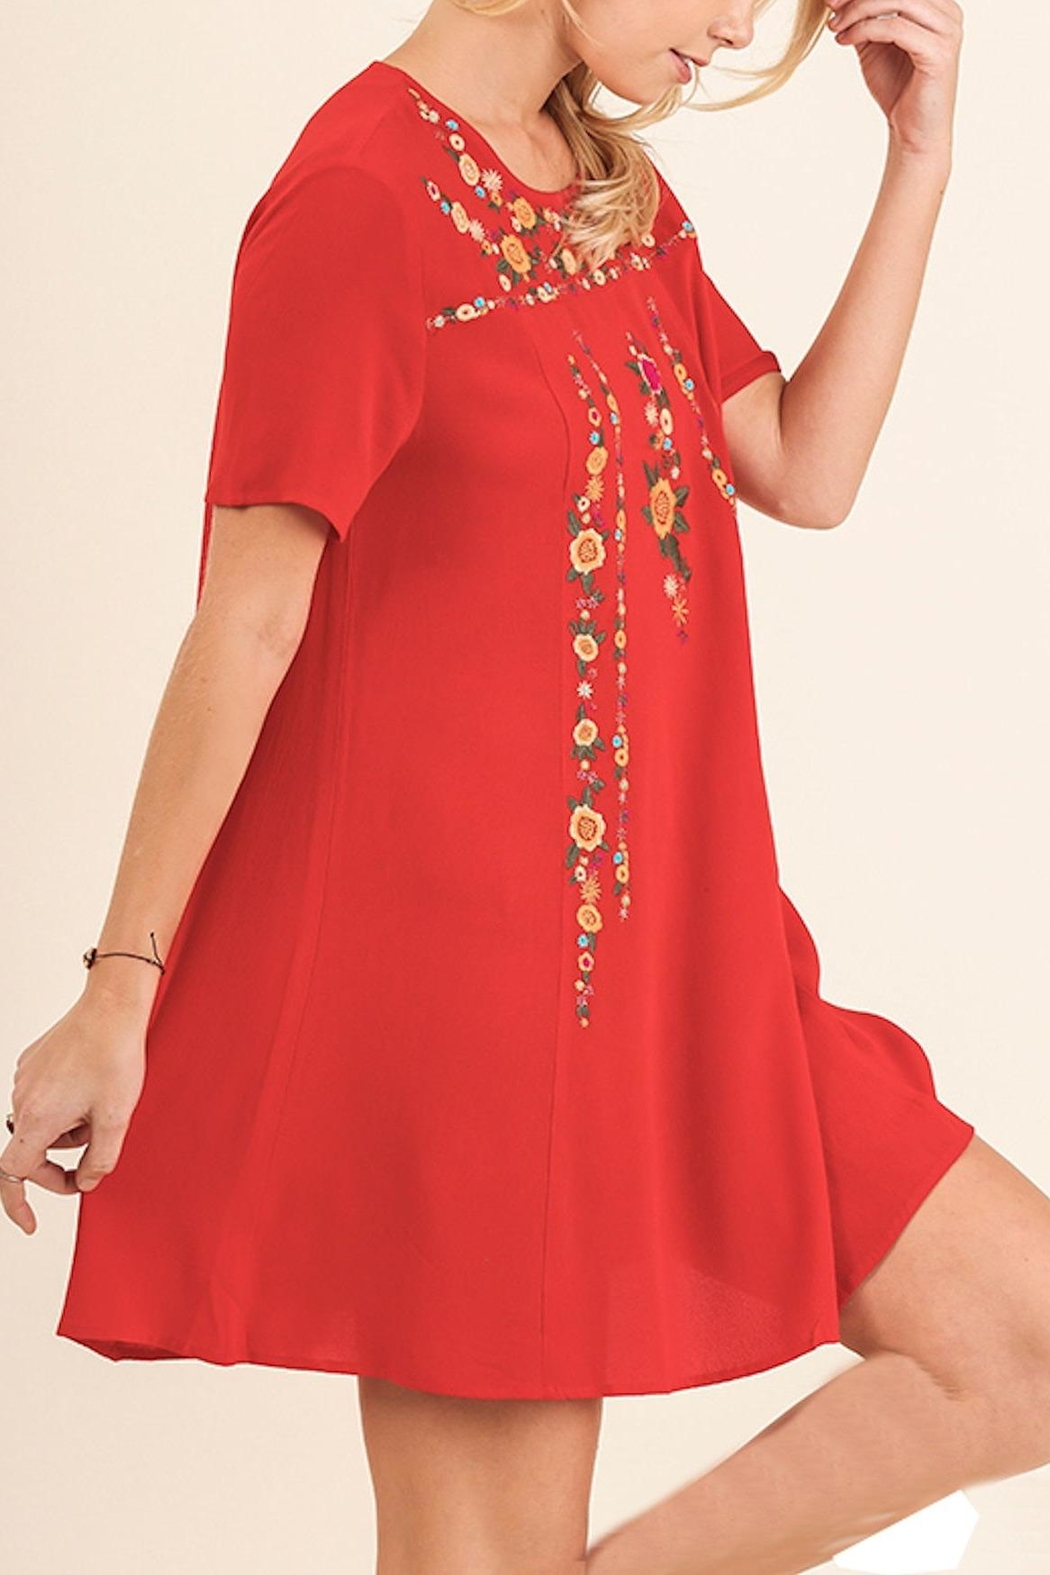 Umgee USA Floral Embroidered Dress - Front Full Image